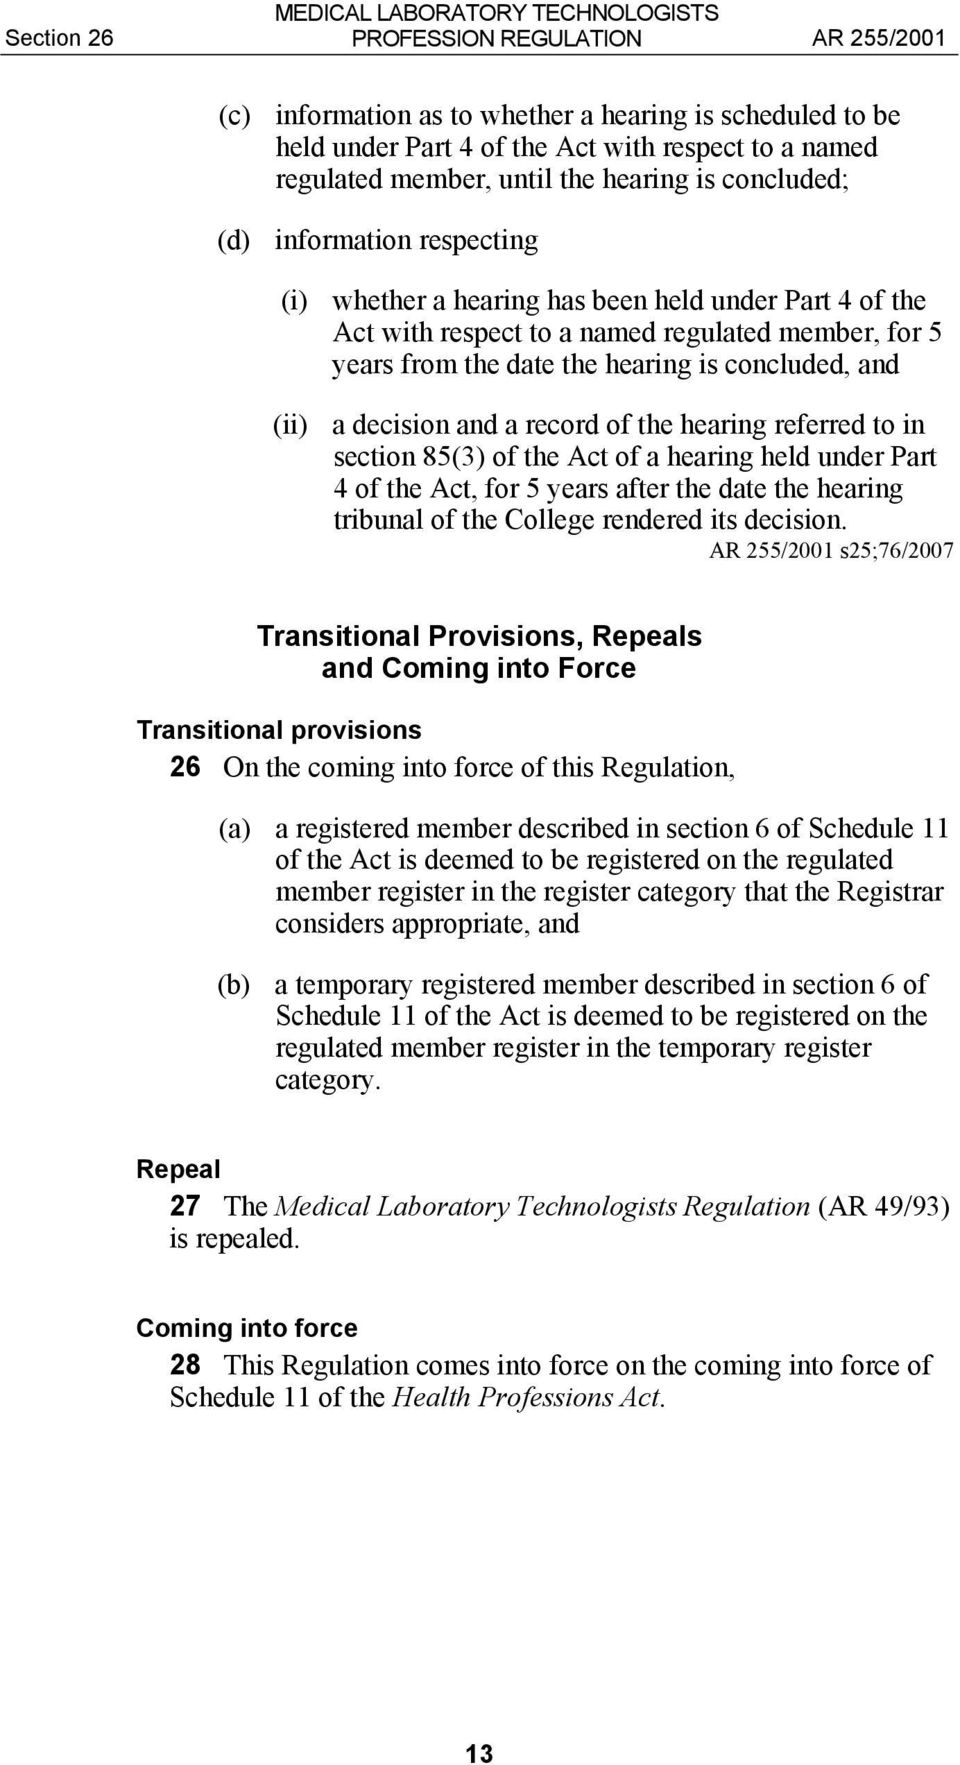 and a record of the hearing referred to in section 85(3) of the Act of a hearing held under Part 4 of the Act, for 5 years after the date the hearing tribunal of the College rendered its decision.